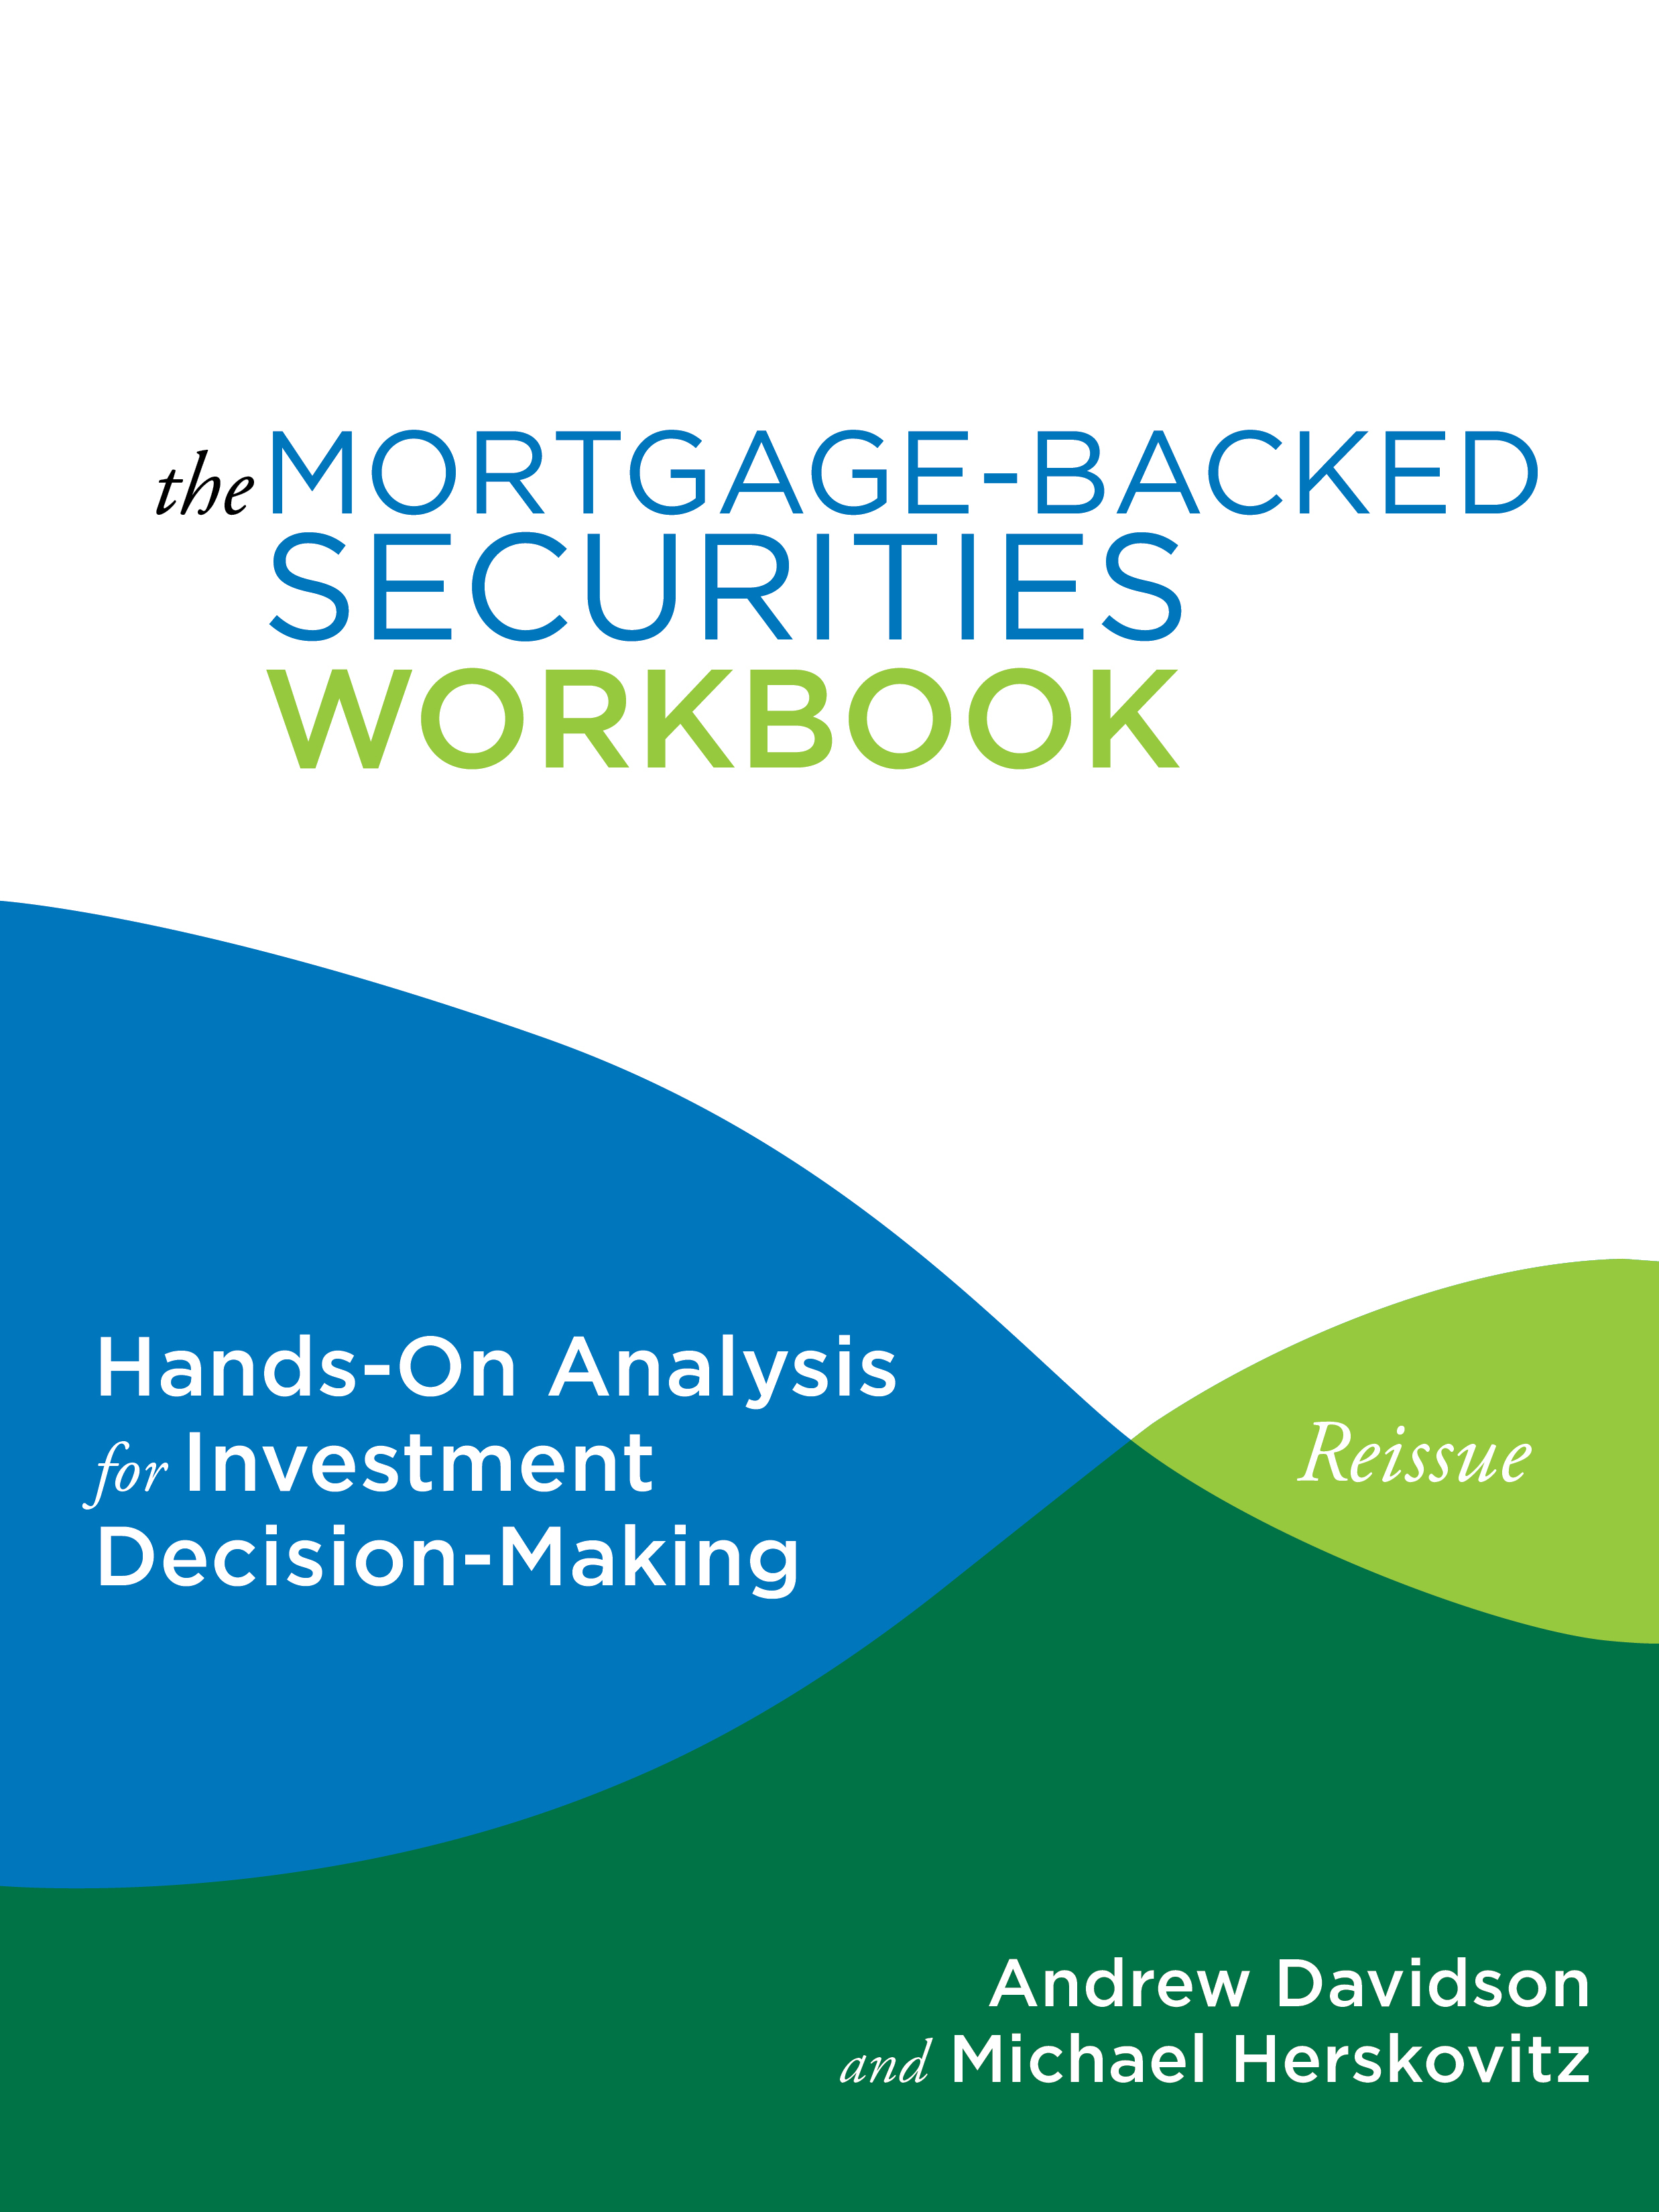 MBS Workbook Reissue Cover